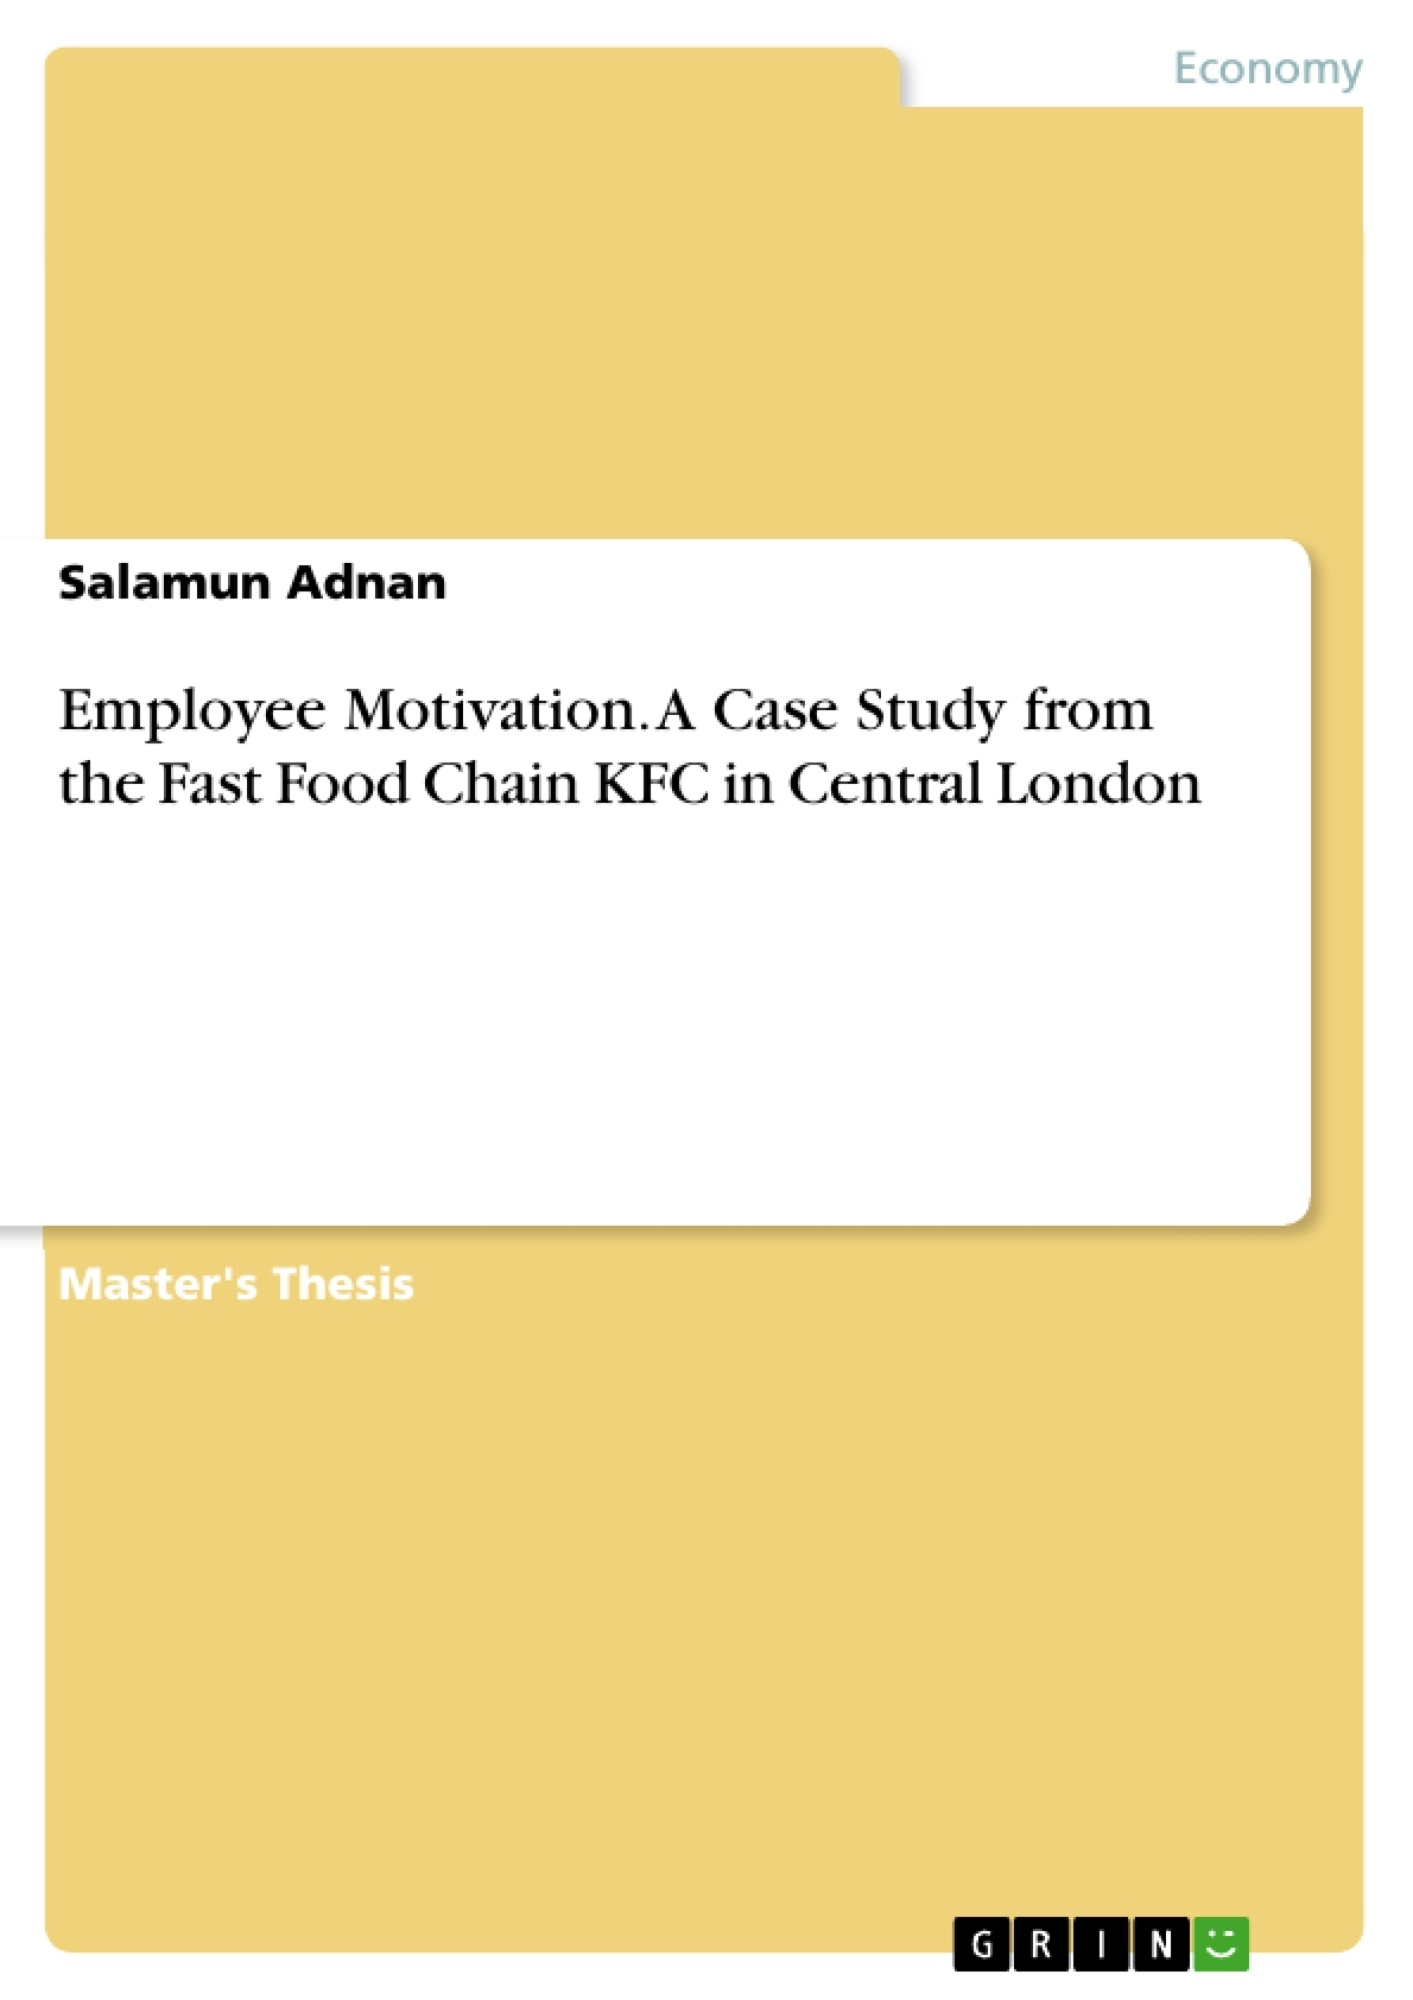 Title: Employee Motivation. A Case Study from the Fast Food Chain KFC in Central London